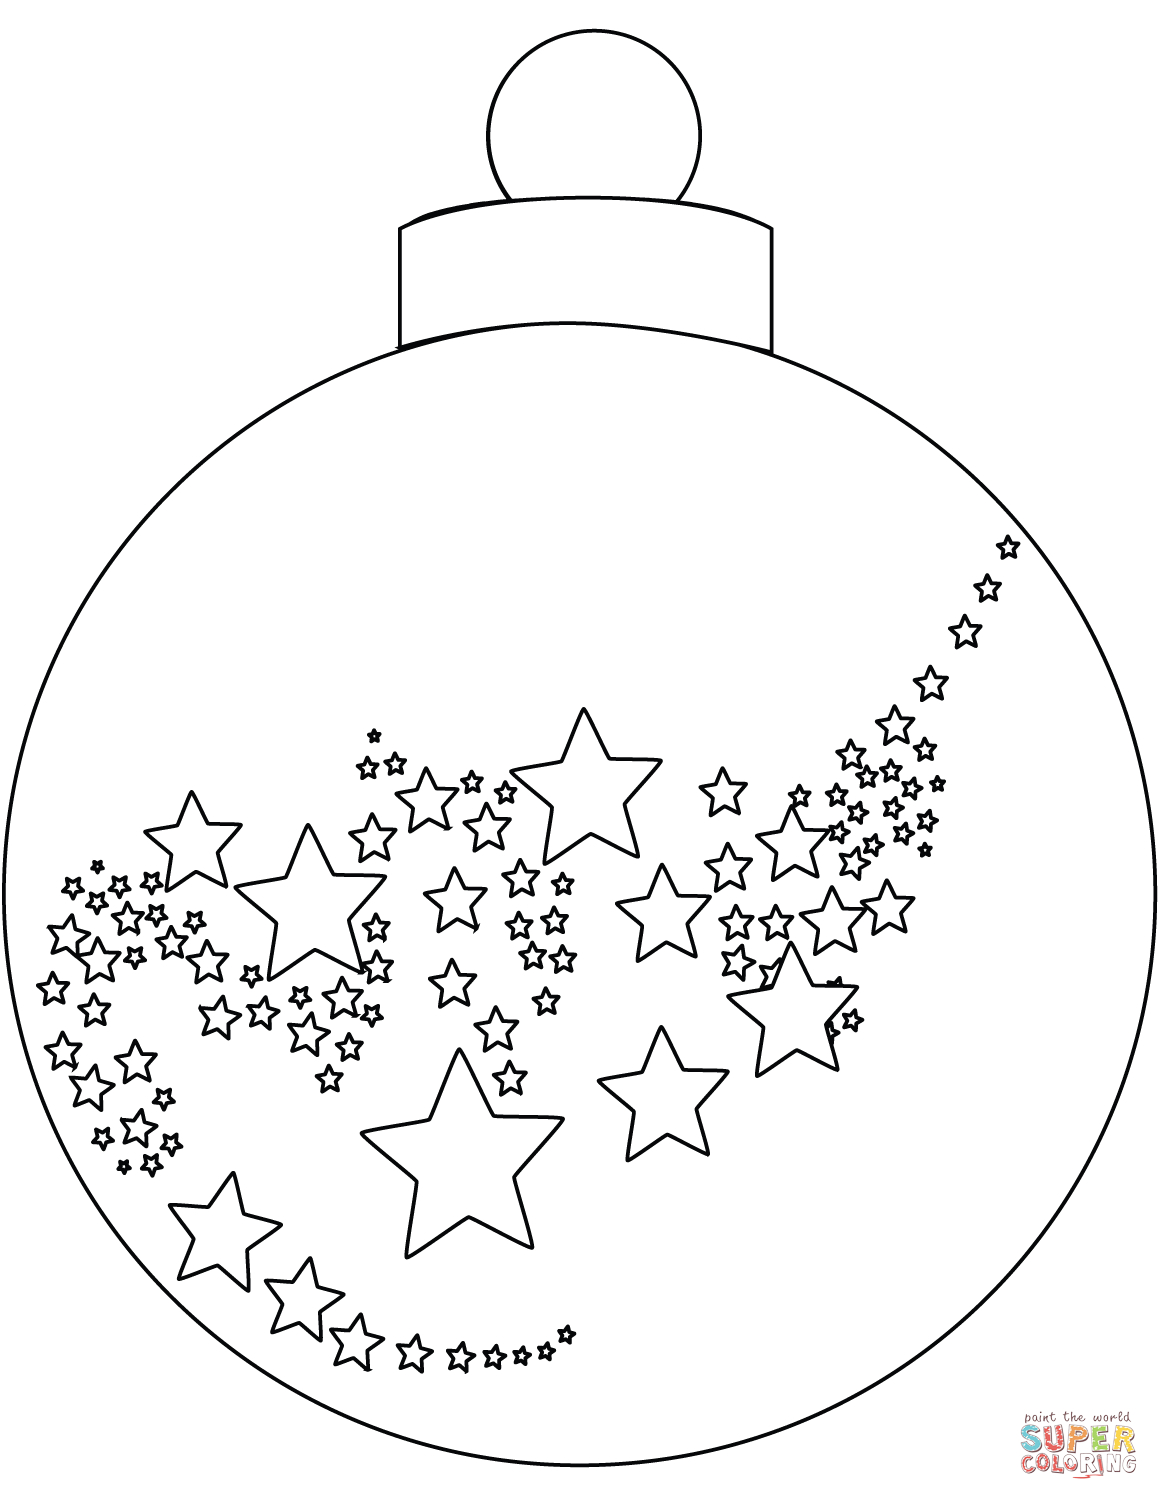 Christmas Ornament Coloring Page | Free Printable Coloring Pages - Free Printable Ornaments To Color